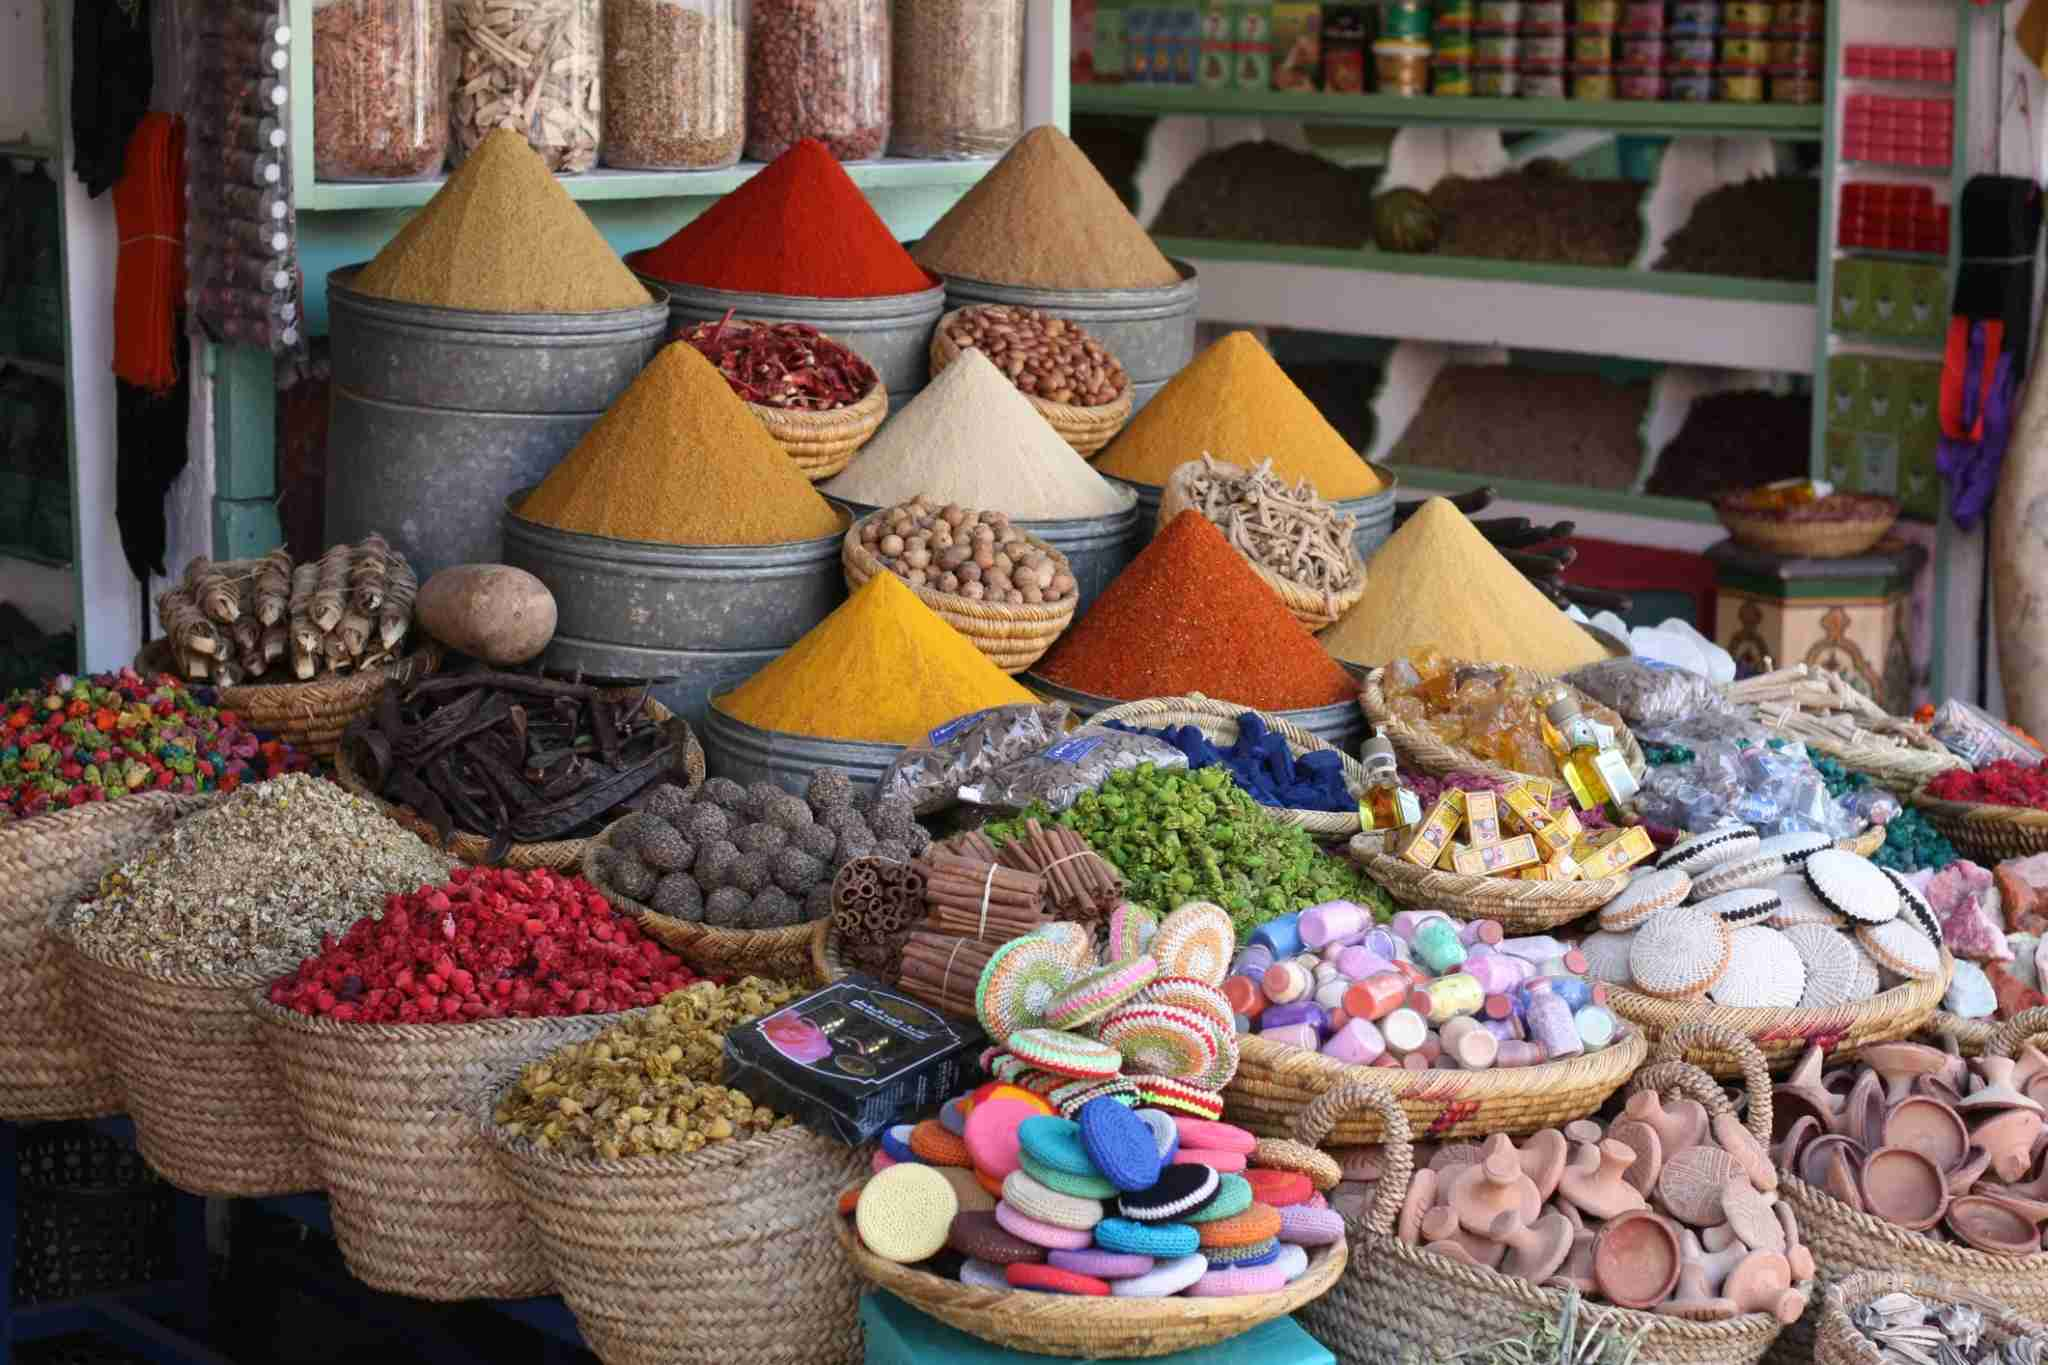 The towers of spices are beautiful, but your best bet is to buy them in the Berber pharmacies. Image courtesy of Gloria Hinter / EyeEm via Getty Images.